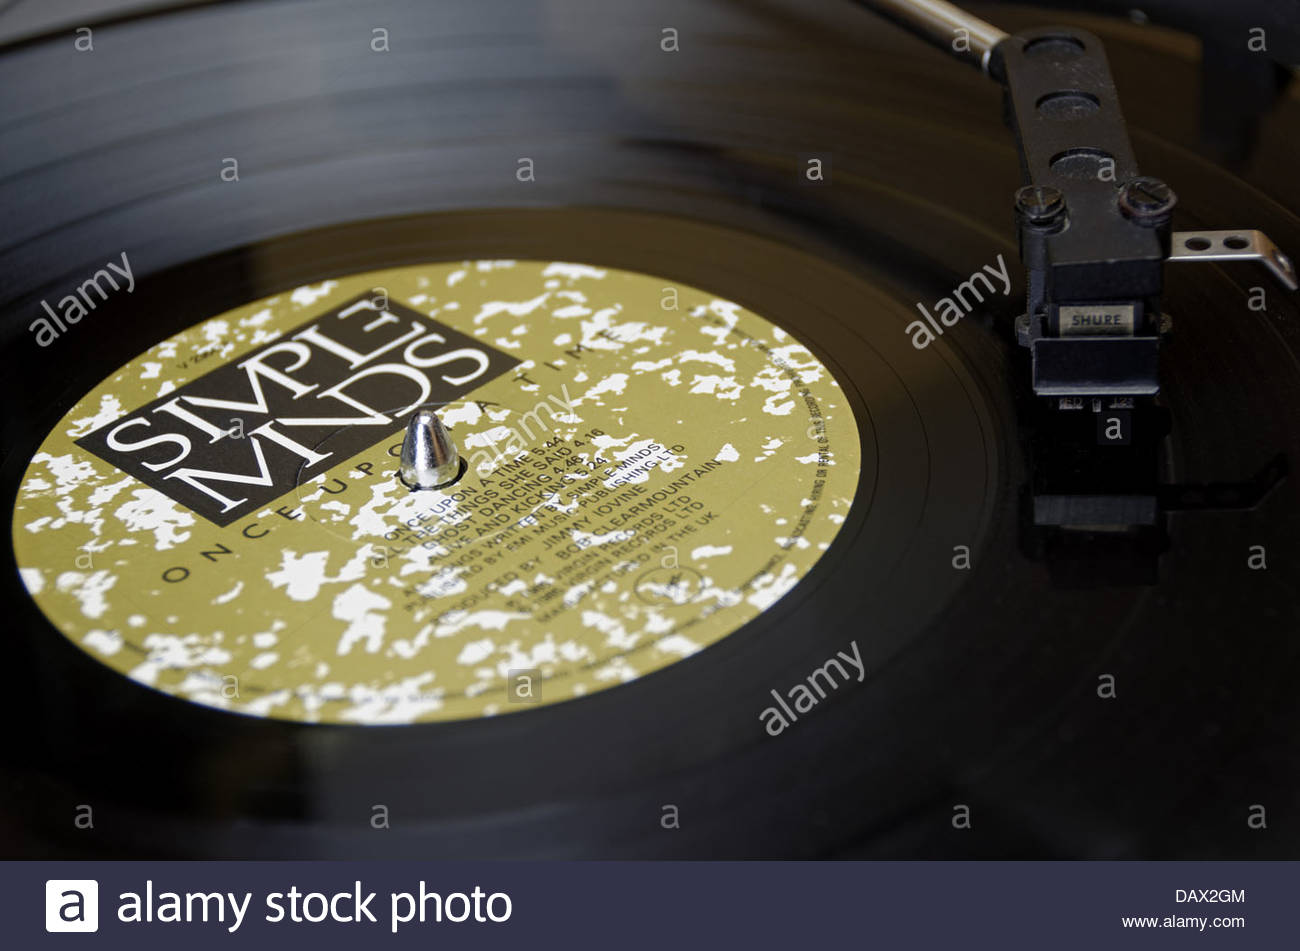 Virgin Records record company music label for the album Once Upon A Time by the band Simple Minds released in 1985. - Stock Image